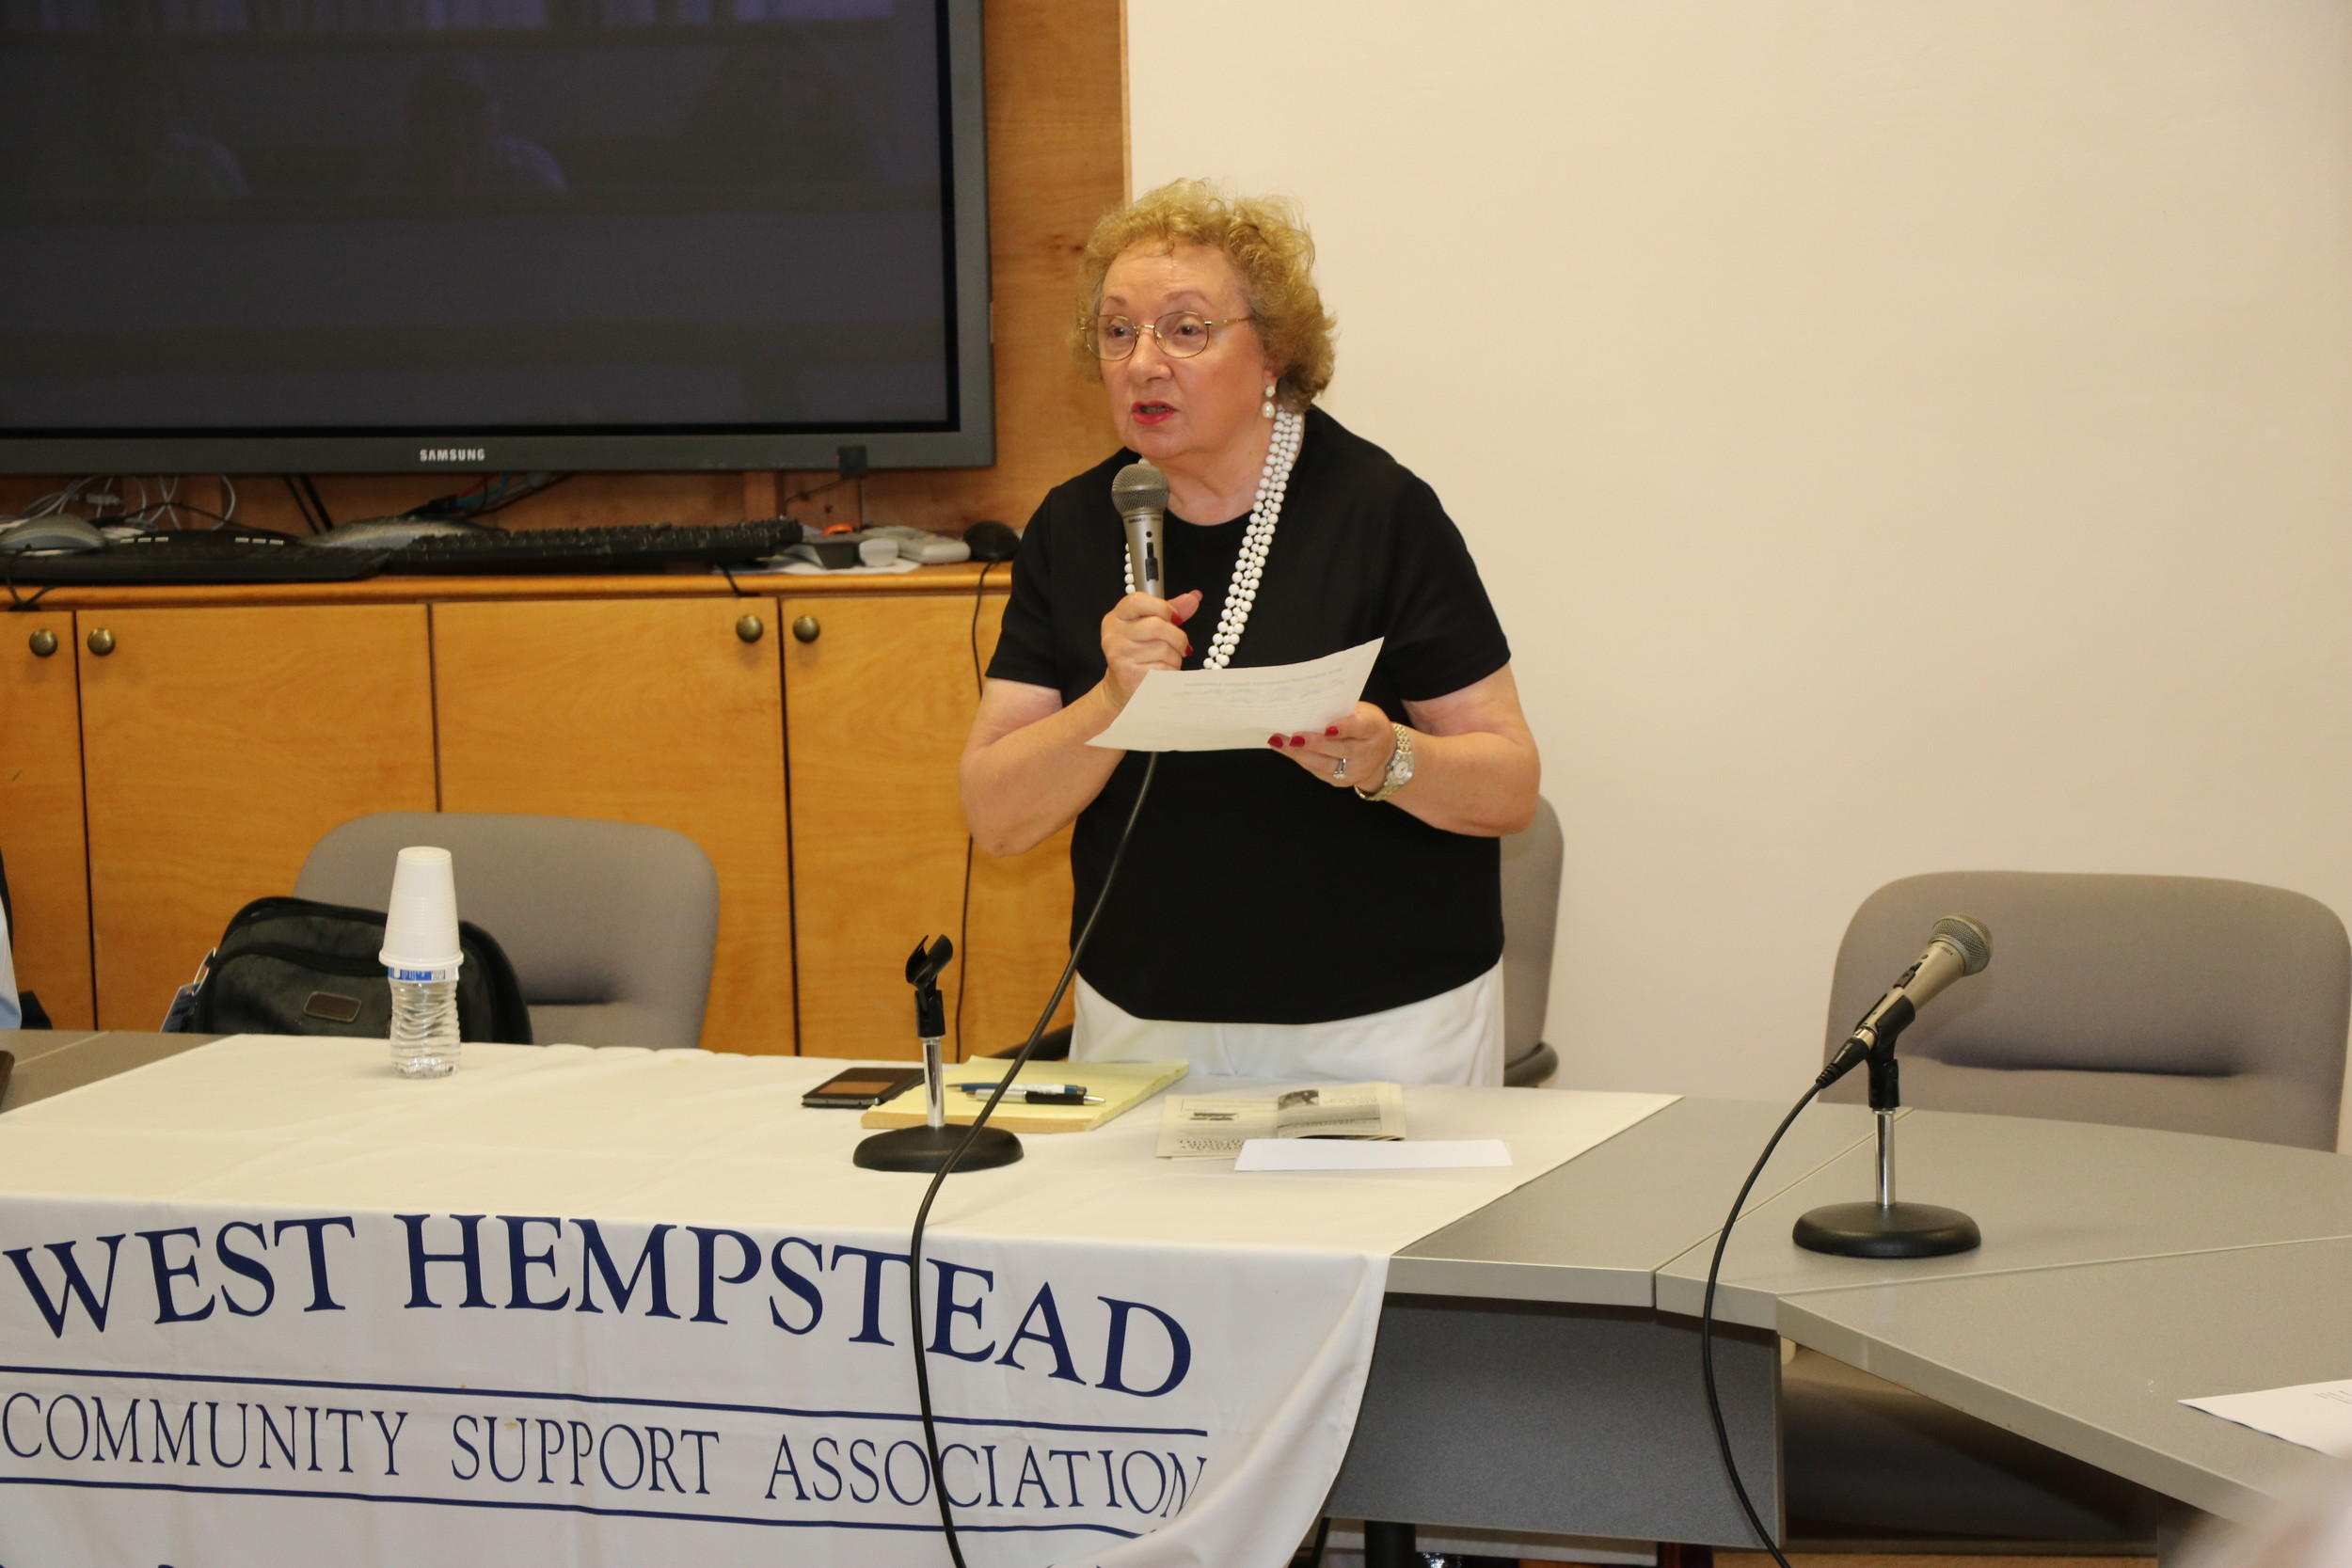 Rosalie Norton of the West Hempstead Community Support Association kicked off the meeting.